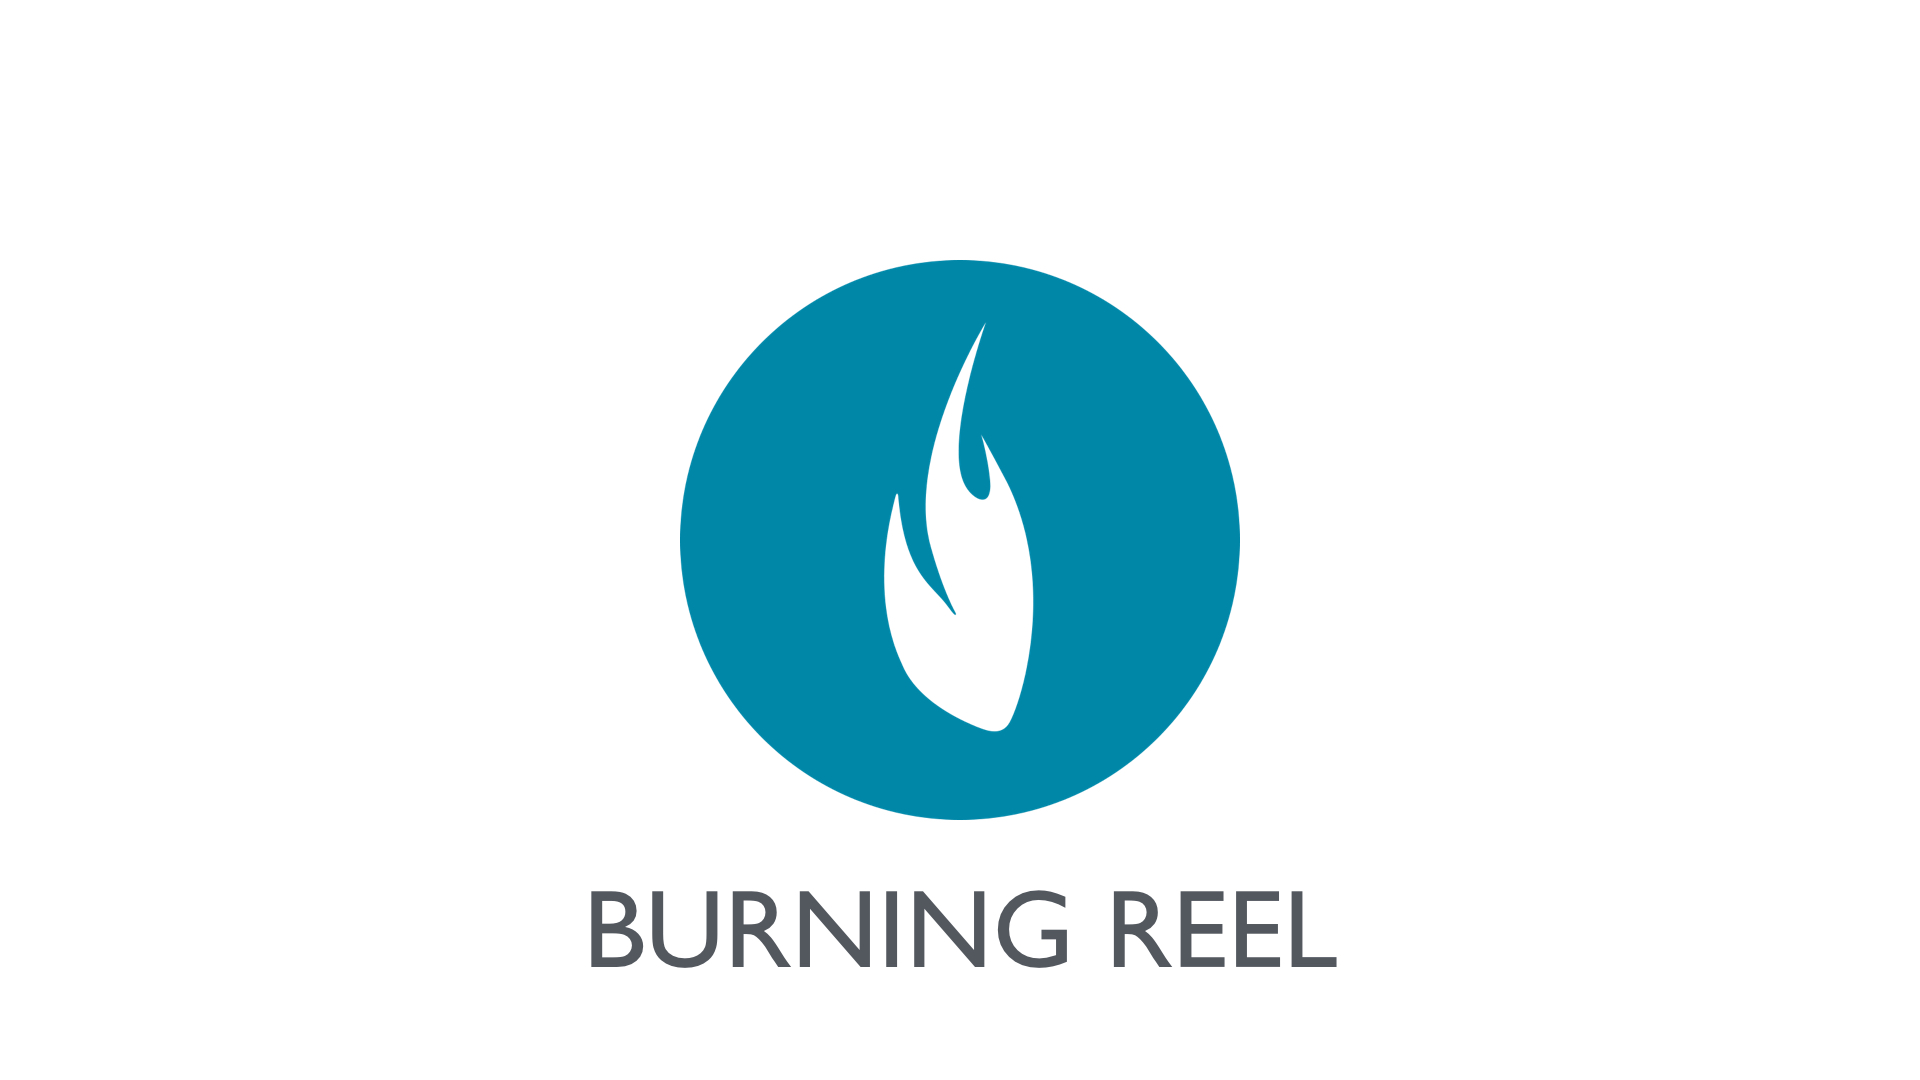 Burning reel logo.001.jpeg